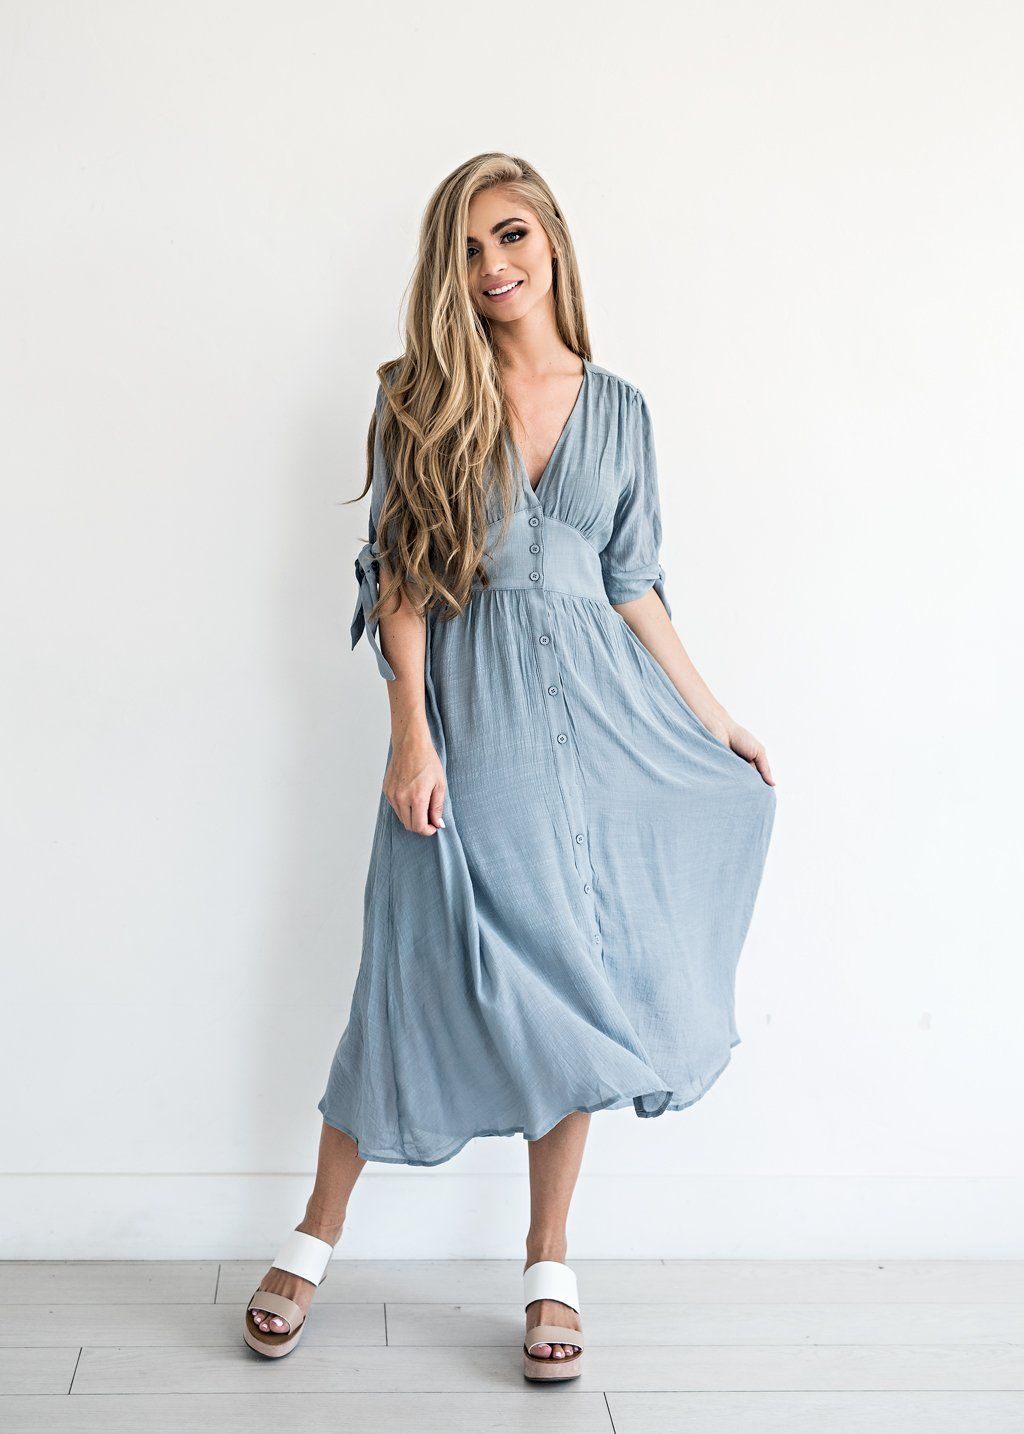 Lucerne wind button down dress dresses pinterest classy dress